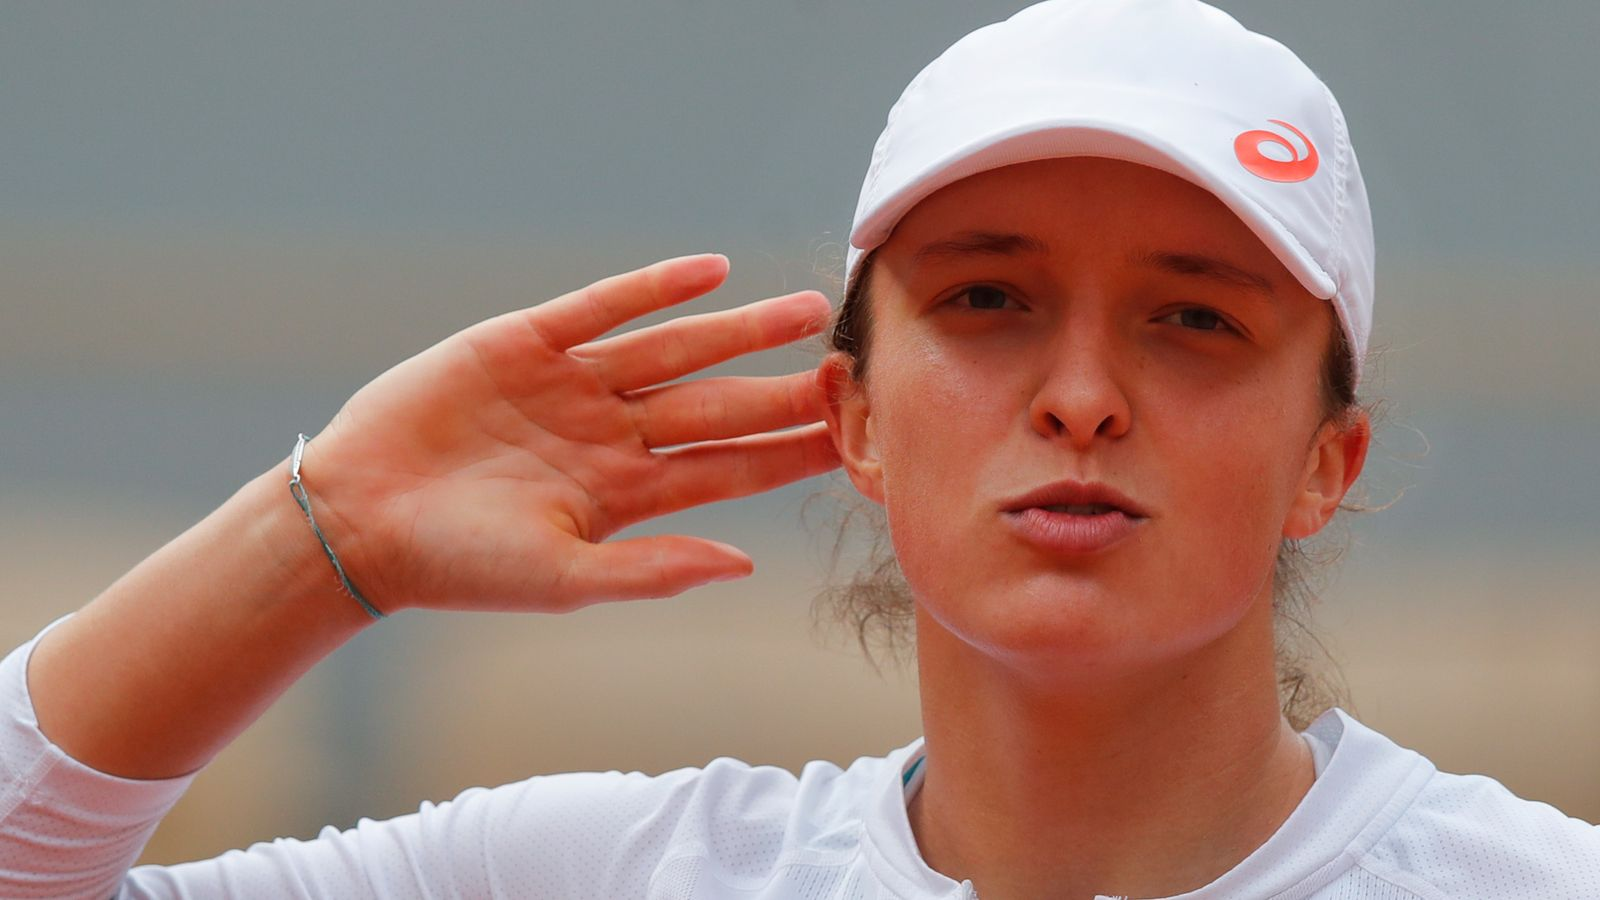 Australian Open: Iga Swiatek is ready to deal with the expectation after winning the French Open